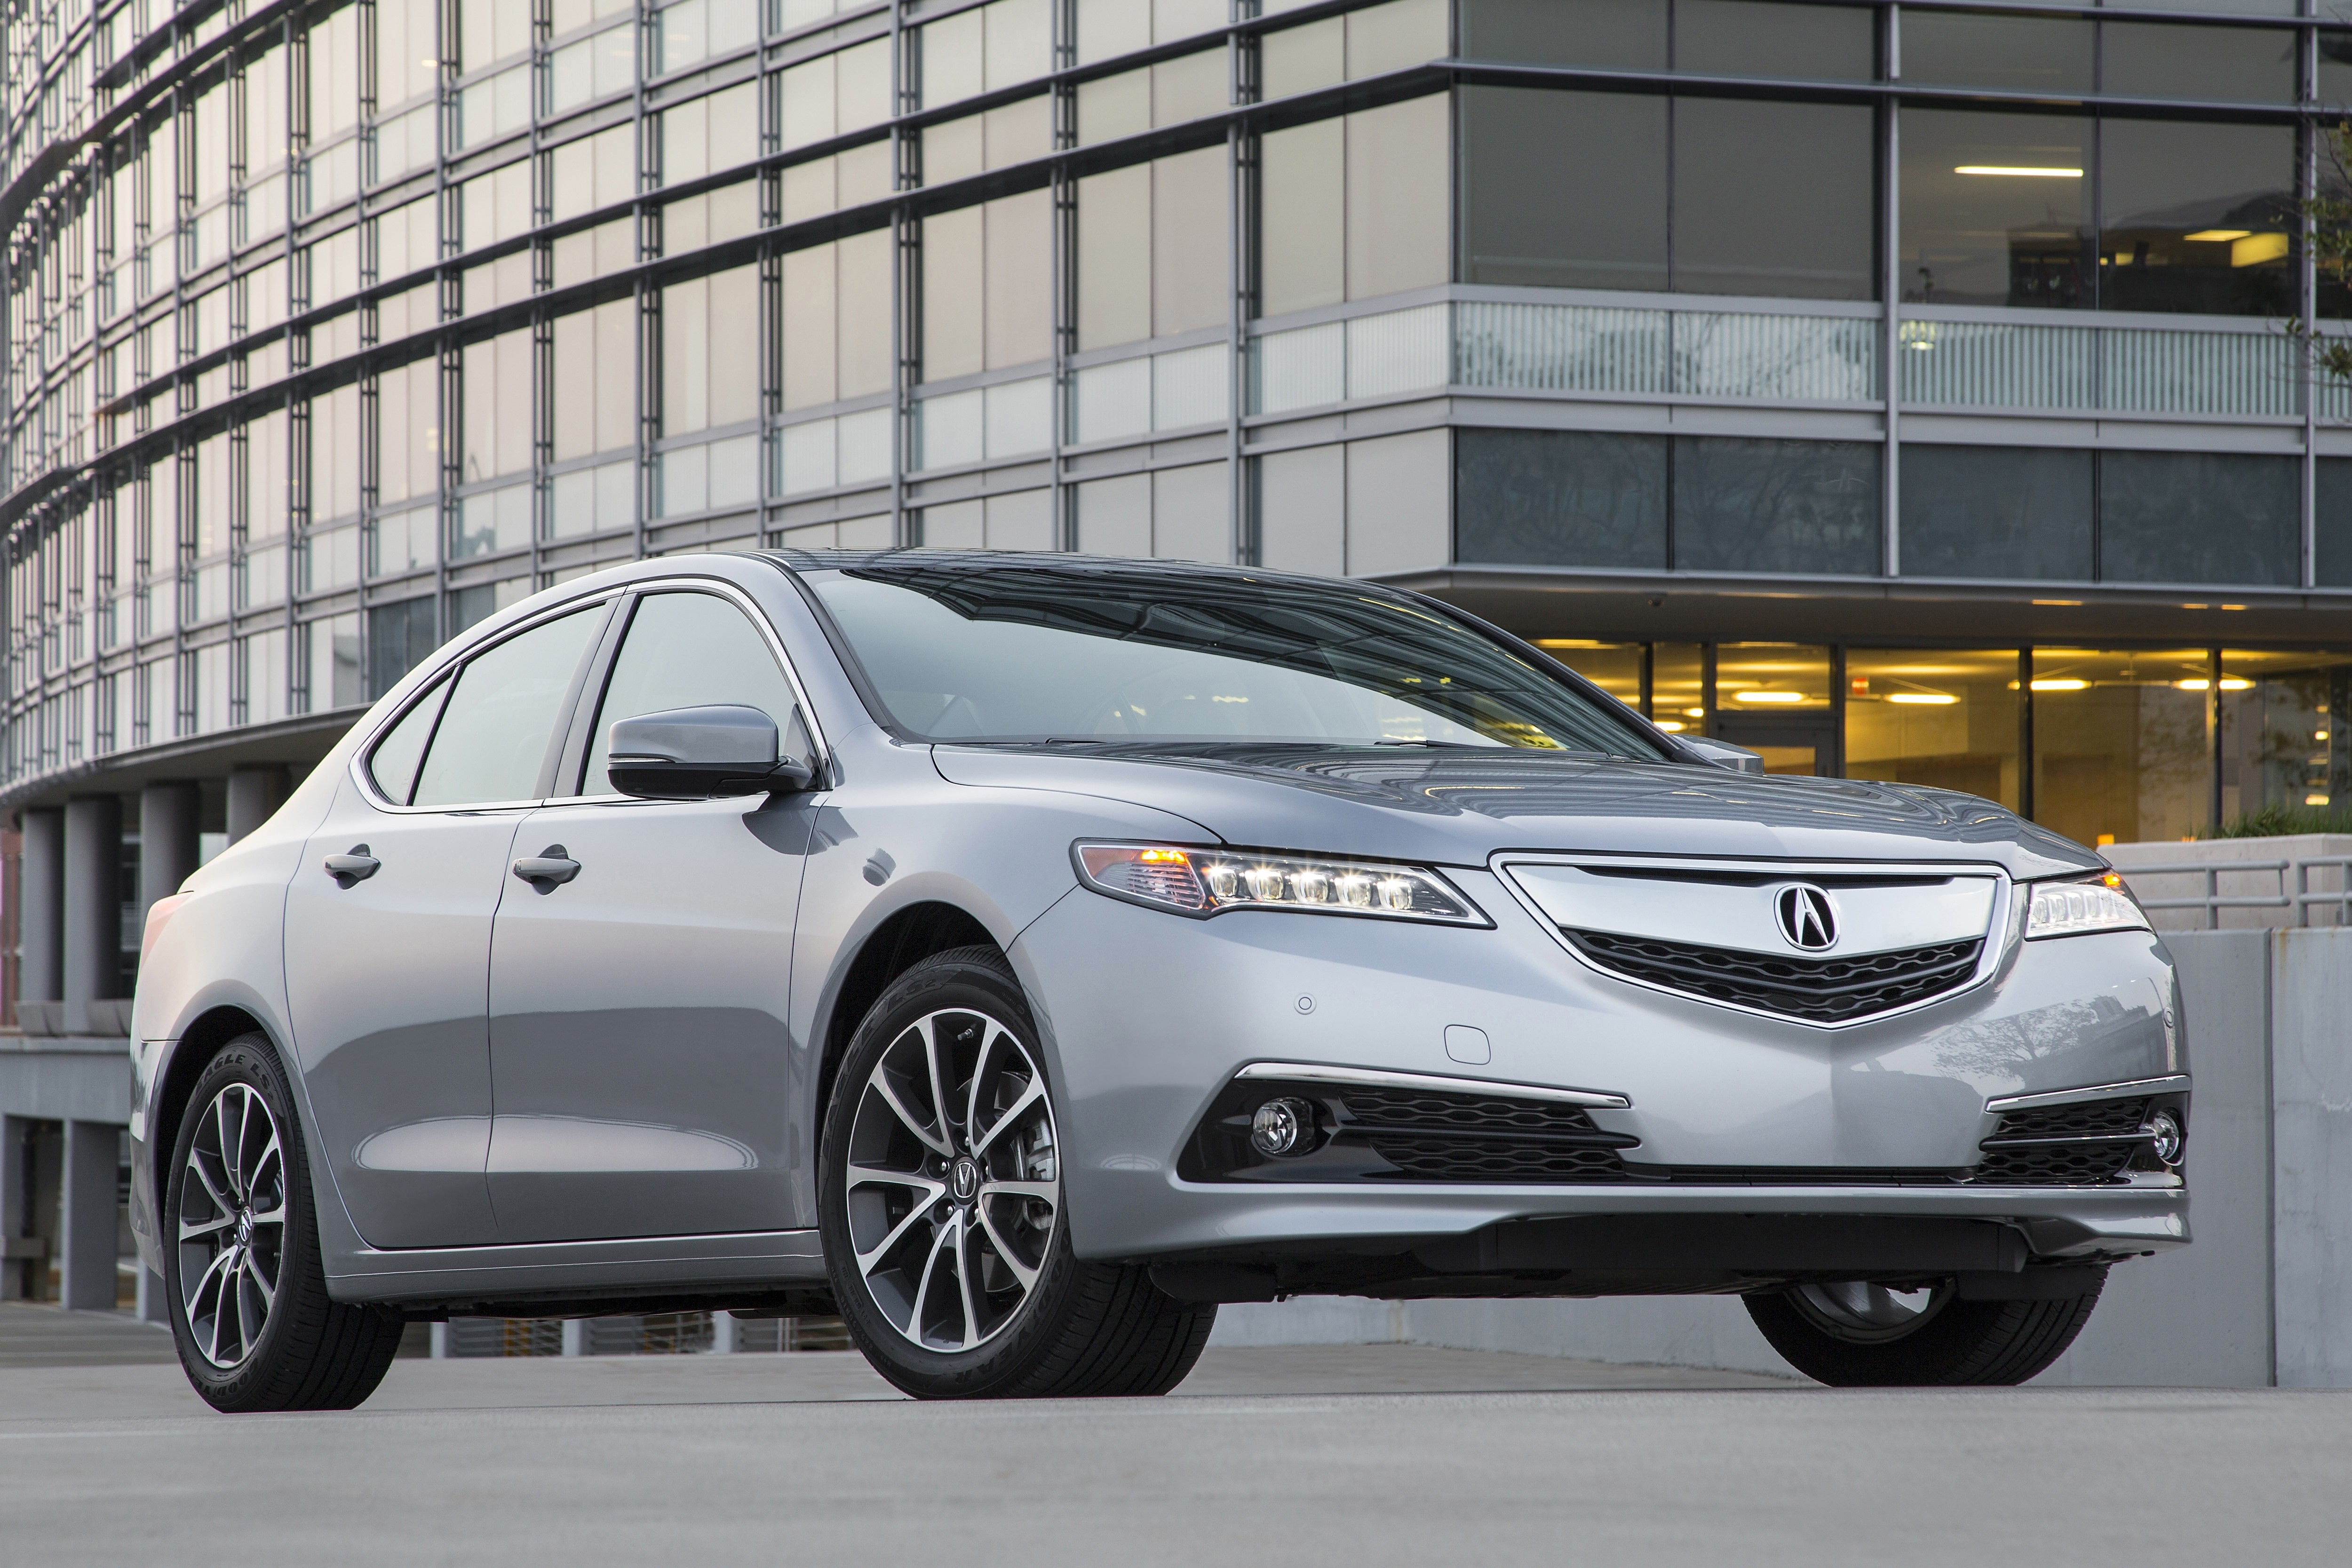 acura tlx exceeding expectations of drivers and dealers pittsburgh post gazette. Black Bedroom Furniture Sets. Home Design Ideas